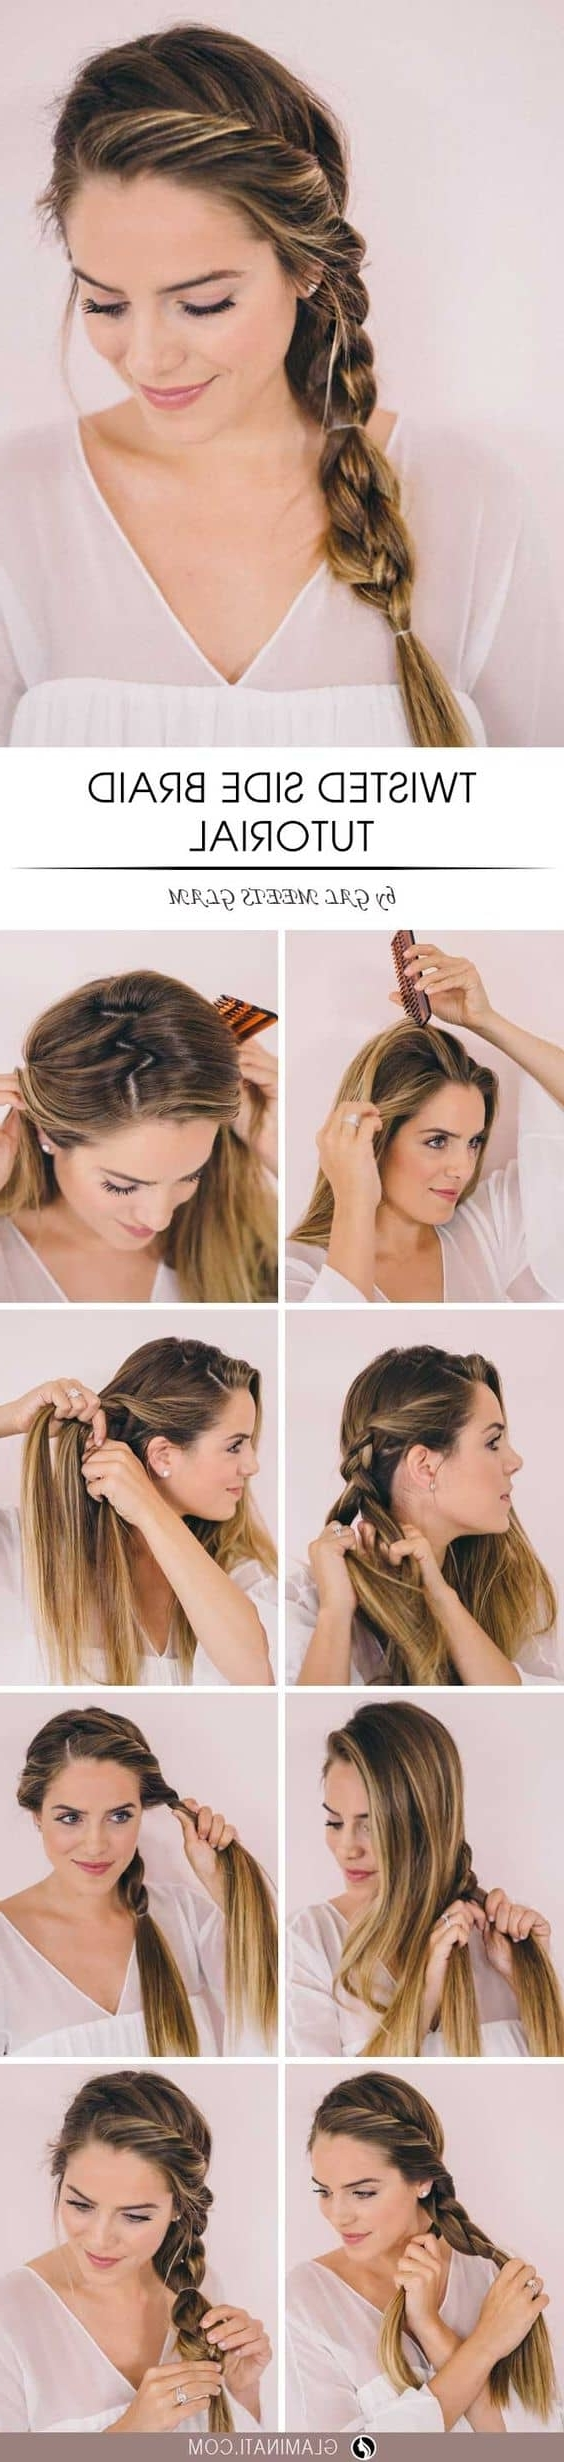 25 Effortless Side Braid Hairstyles To Make You Feel Special In Current Braided Headband And Twisted Side Pony Hairstyles (View 2 of 20)